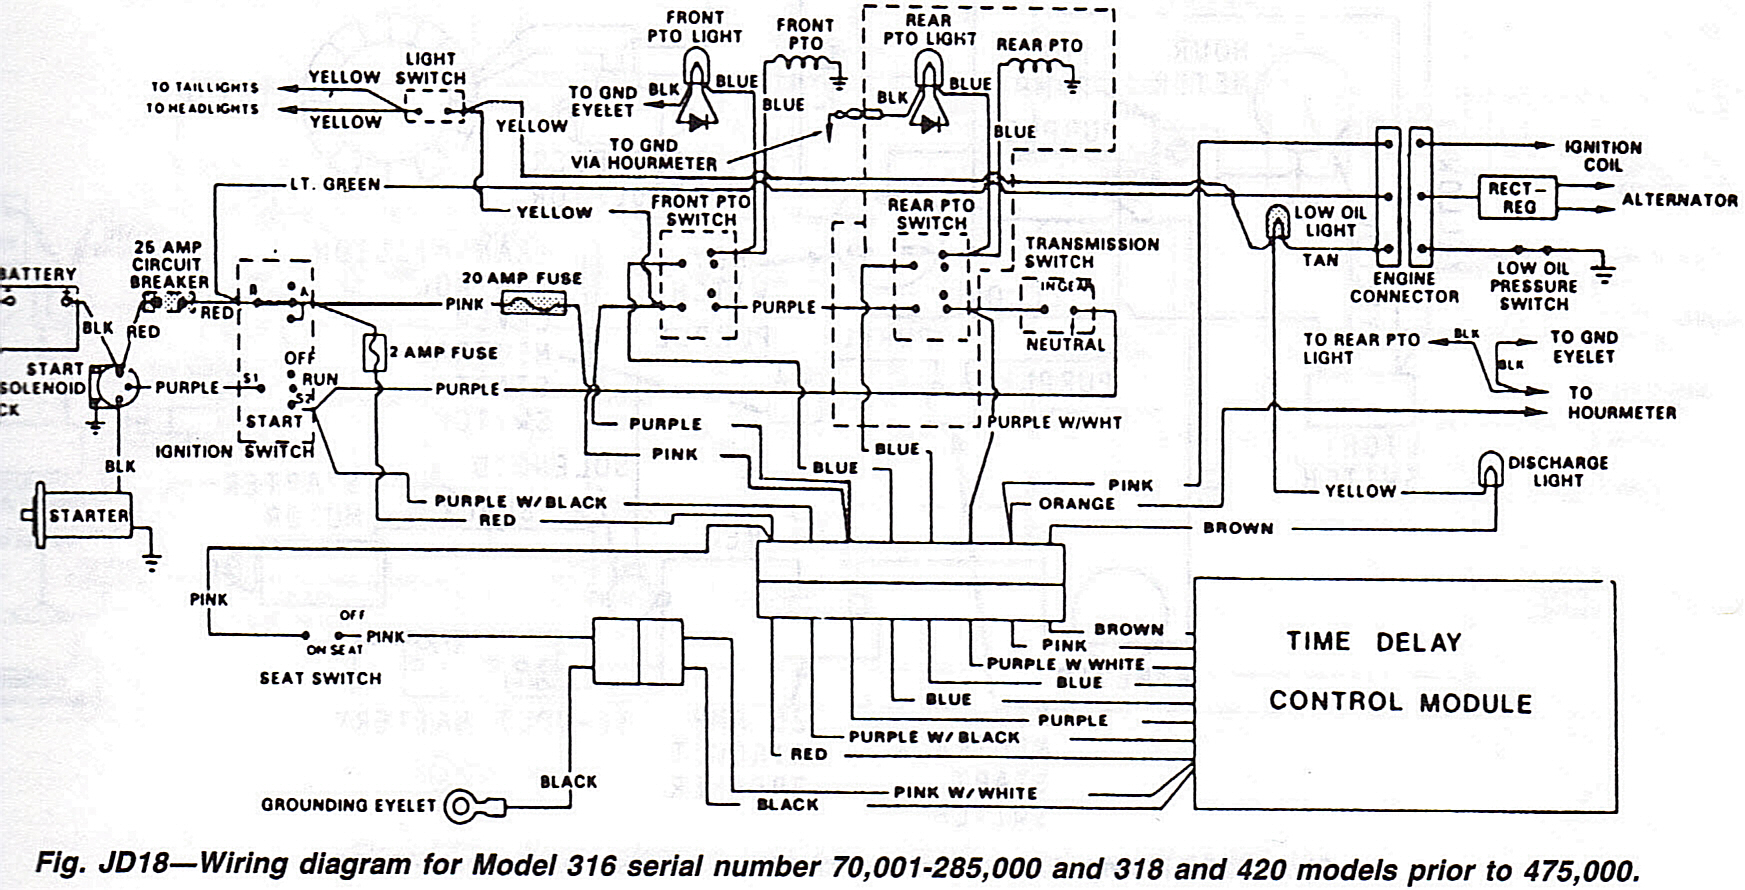 2012 10 02_123520_deere_316 318 420 predator 22 hp wiring diagram hp computer diagram, hp power predator 22 hp wiring diagram at panicattacktreatment.co